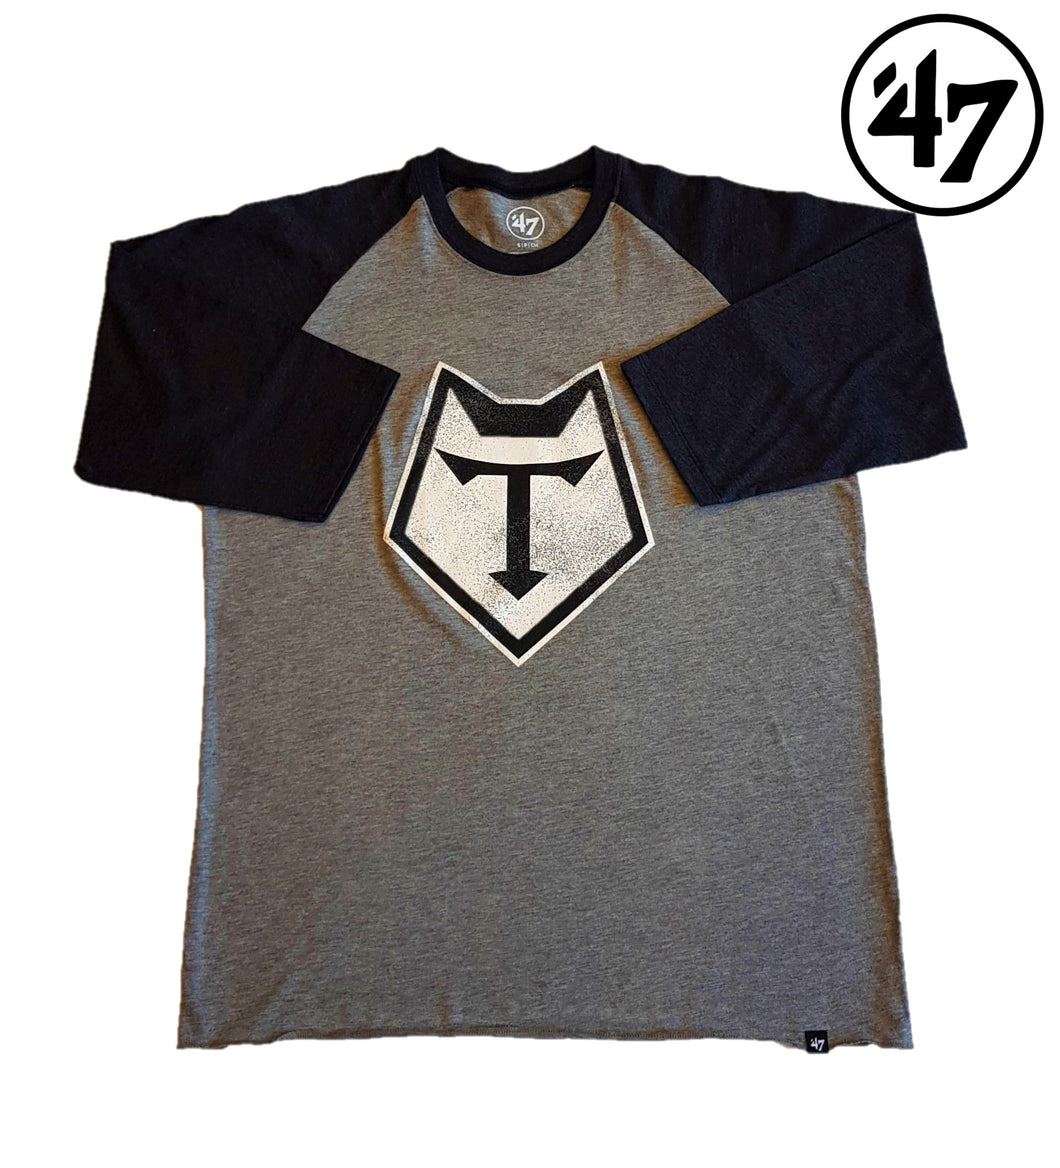 Mens-'47 Brand Distressed Imprint Raglan